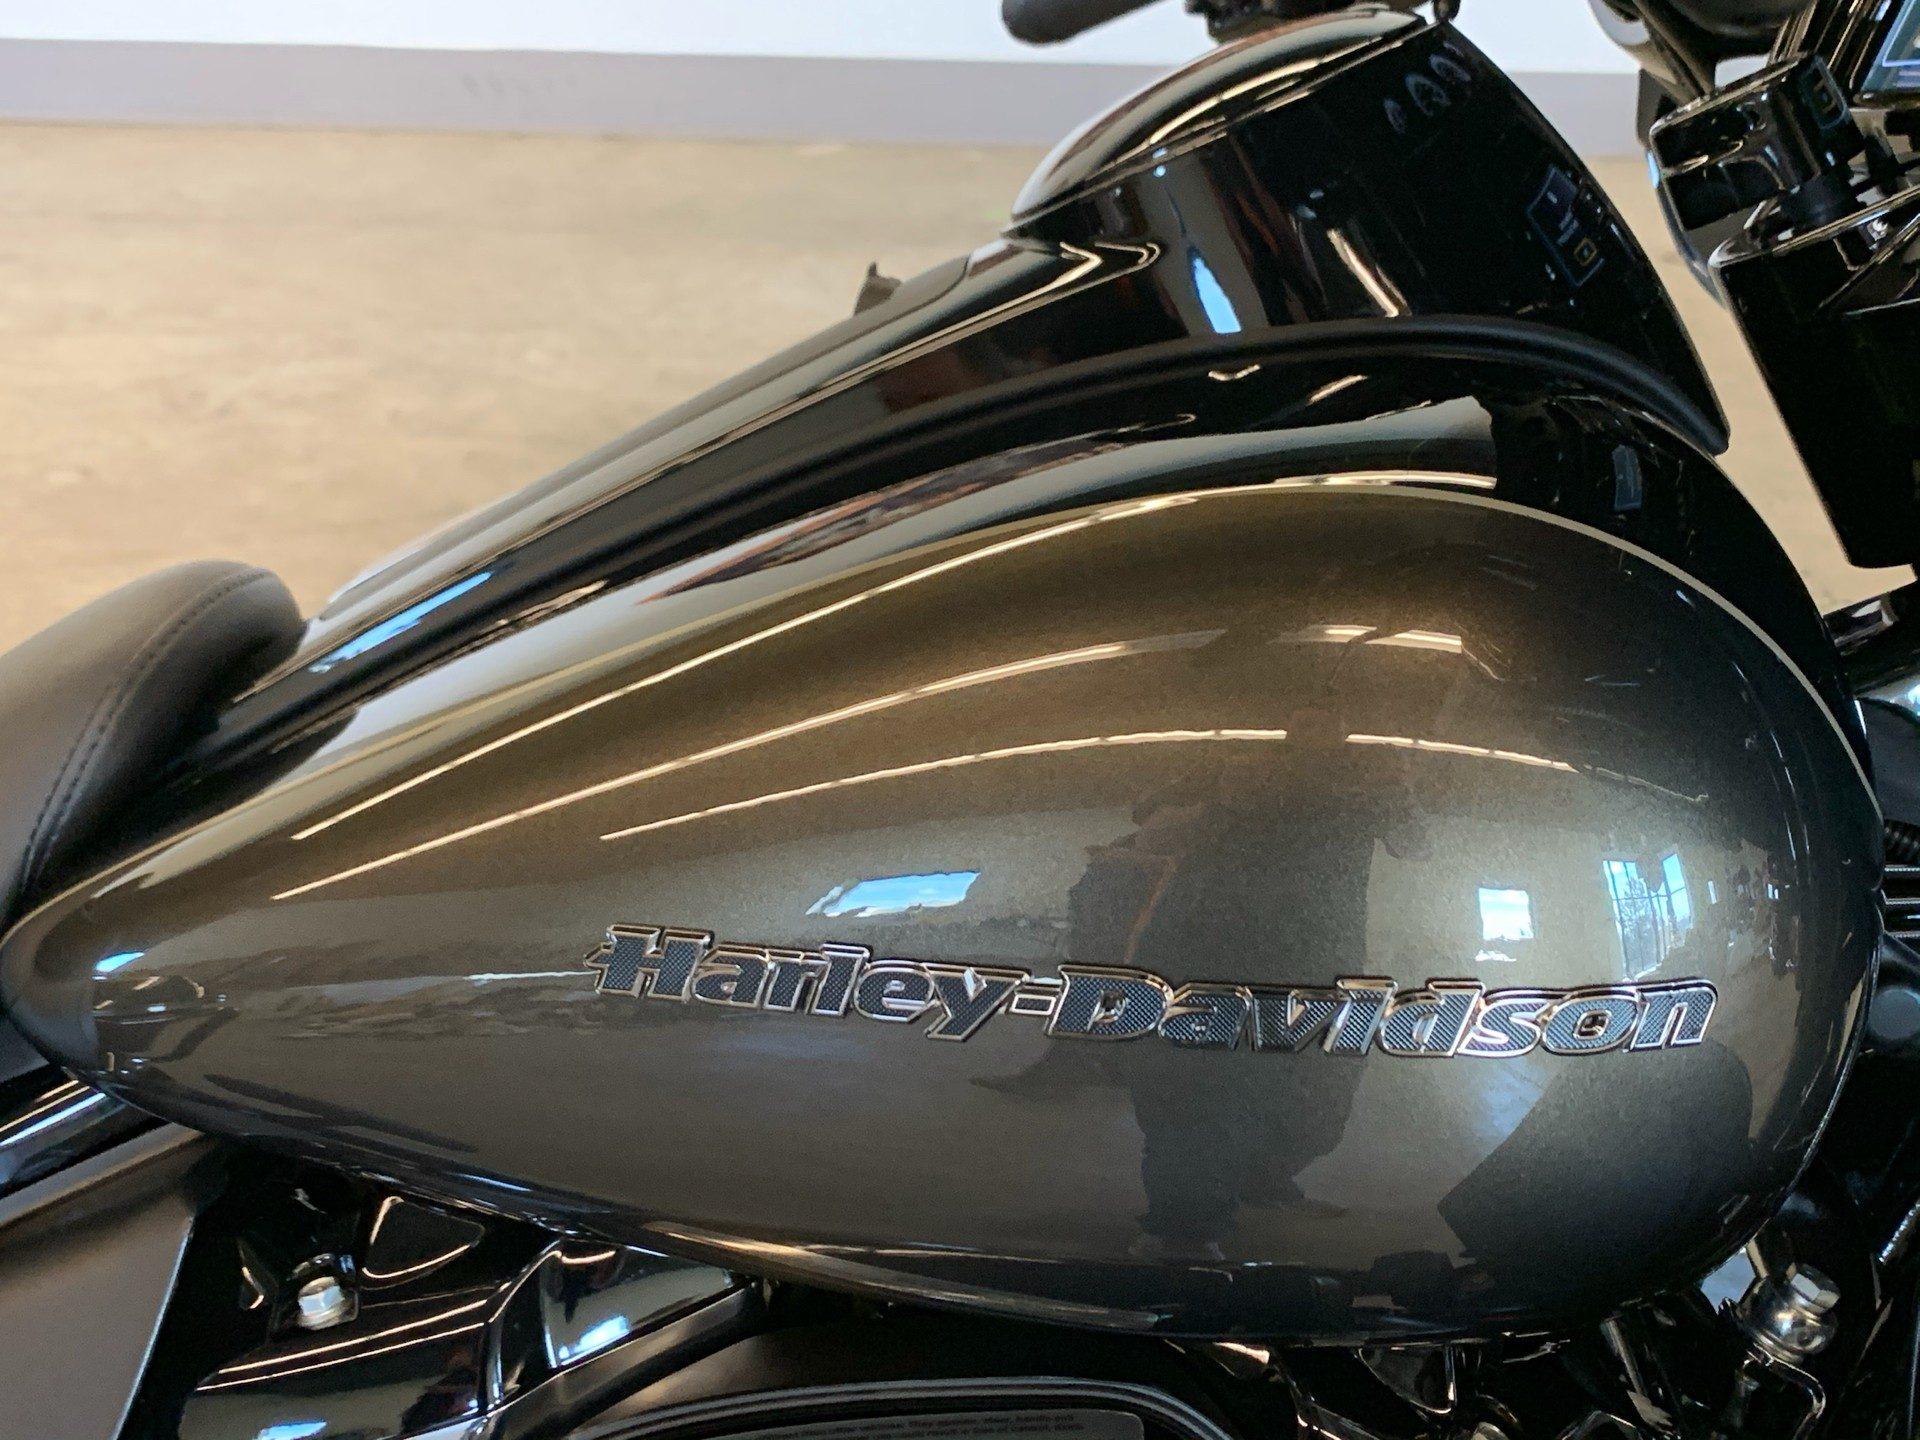 2020 Harley-Davidson Ultra Limited in Flint, Michigan - Photo 11